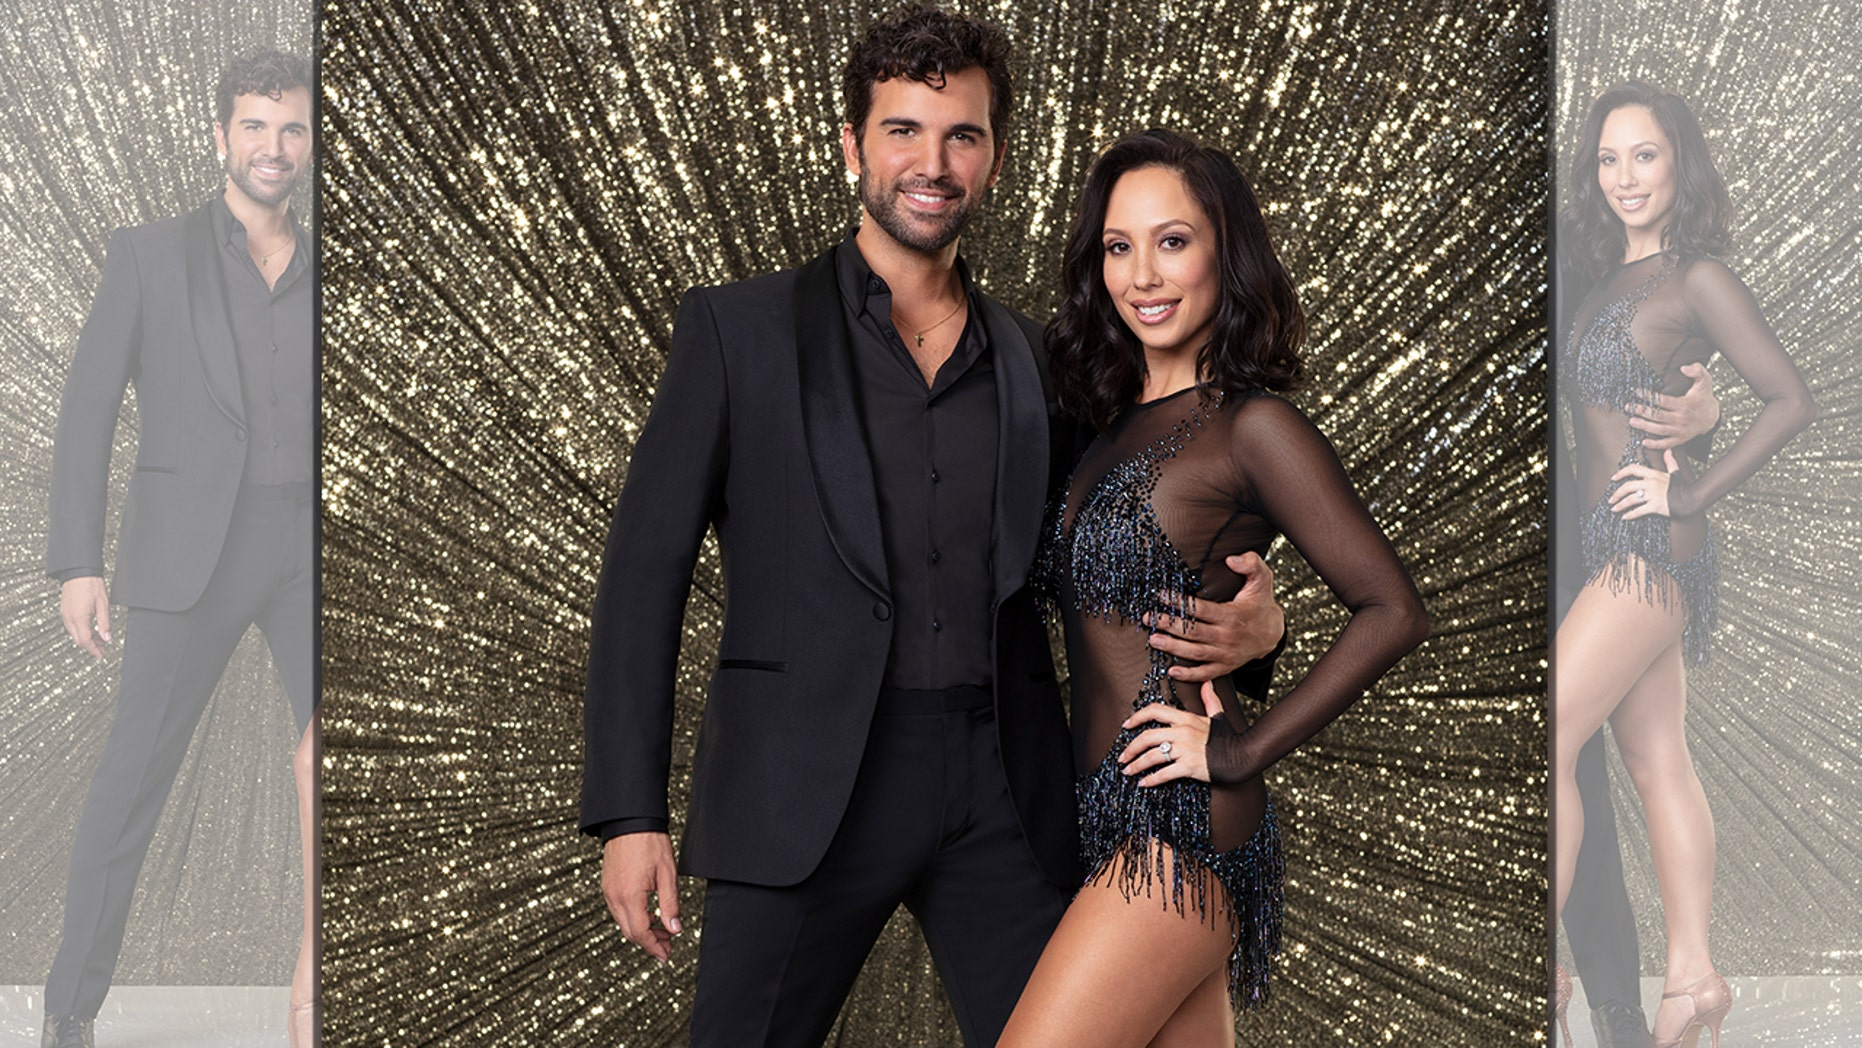 """""""Dancing with the Stars"""" contestant Juan Pablo Di Pace and his partner, Cheryl Burke were eliminated from the ABC reality show Monday night."""